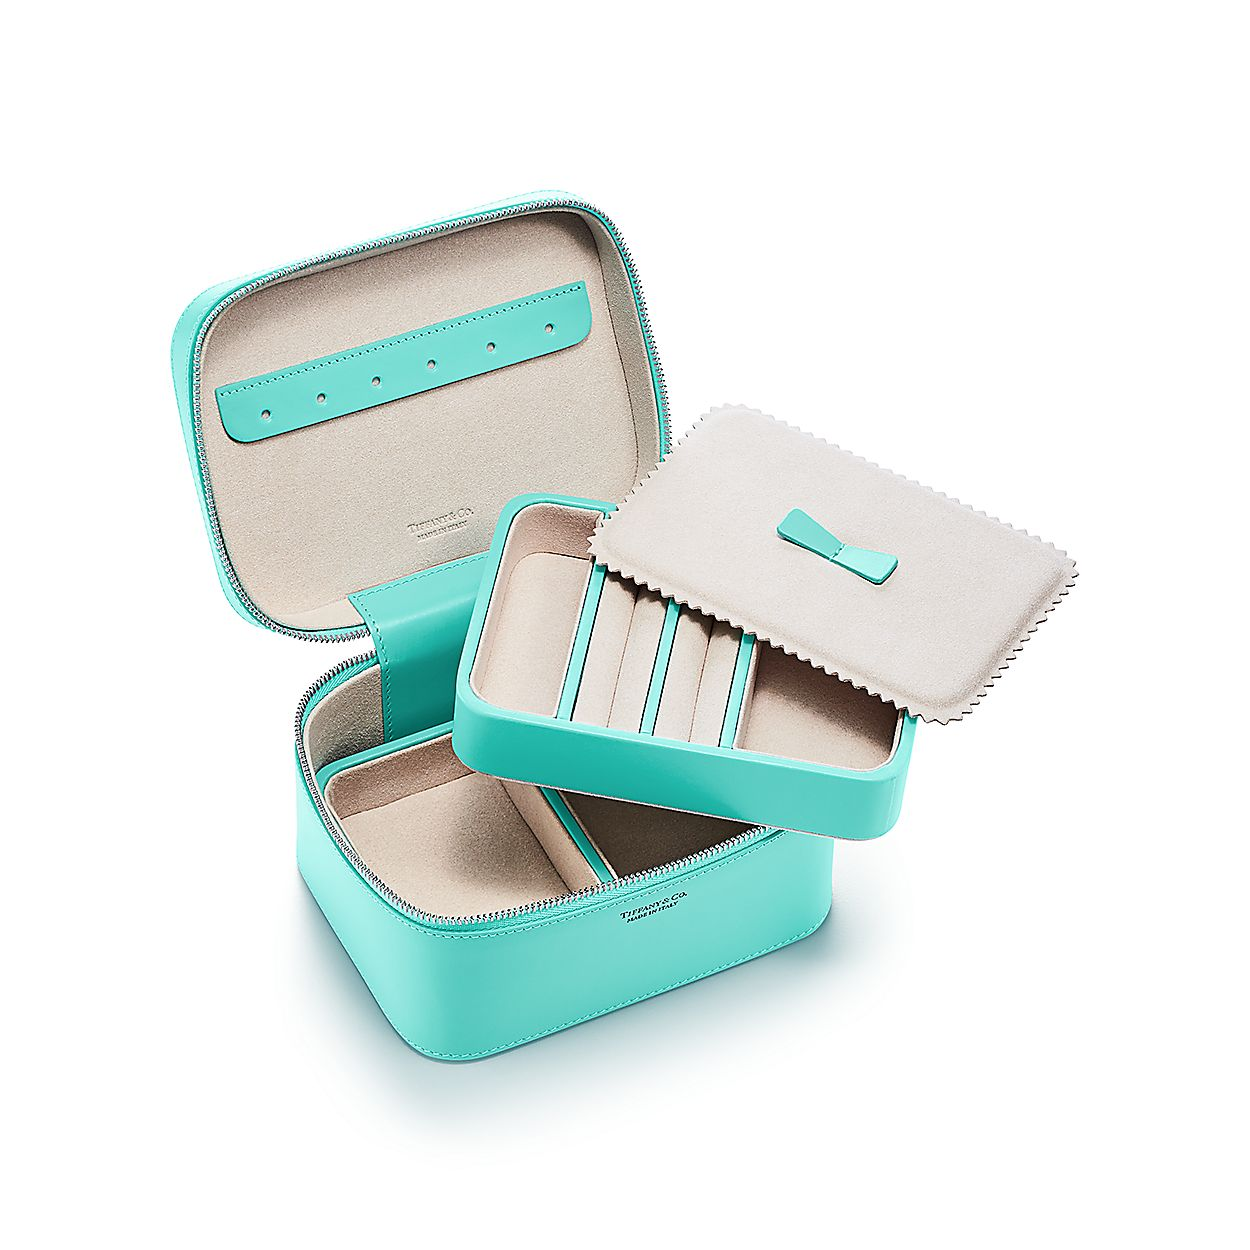 8026d4030 Rectangular jewelry case in Tiffany Blue® smooth calfskin leather ...